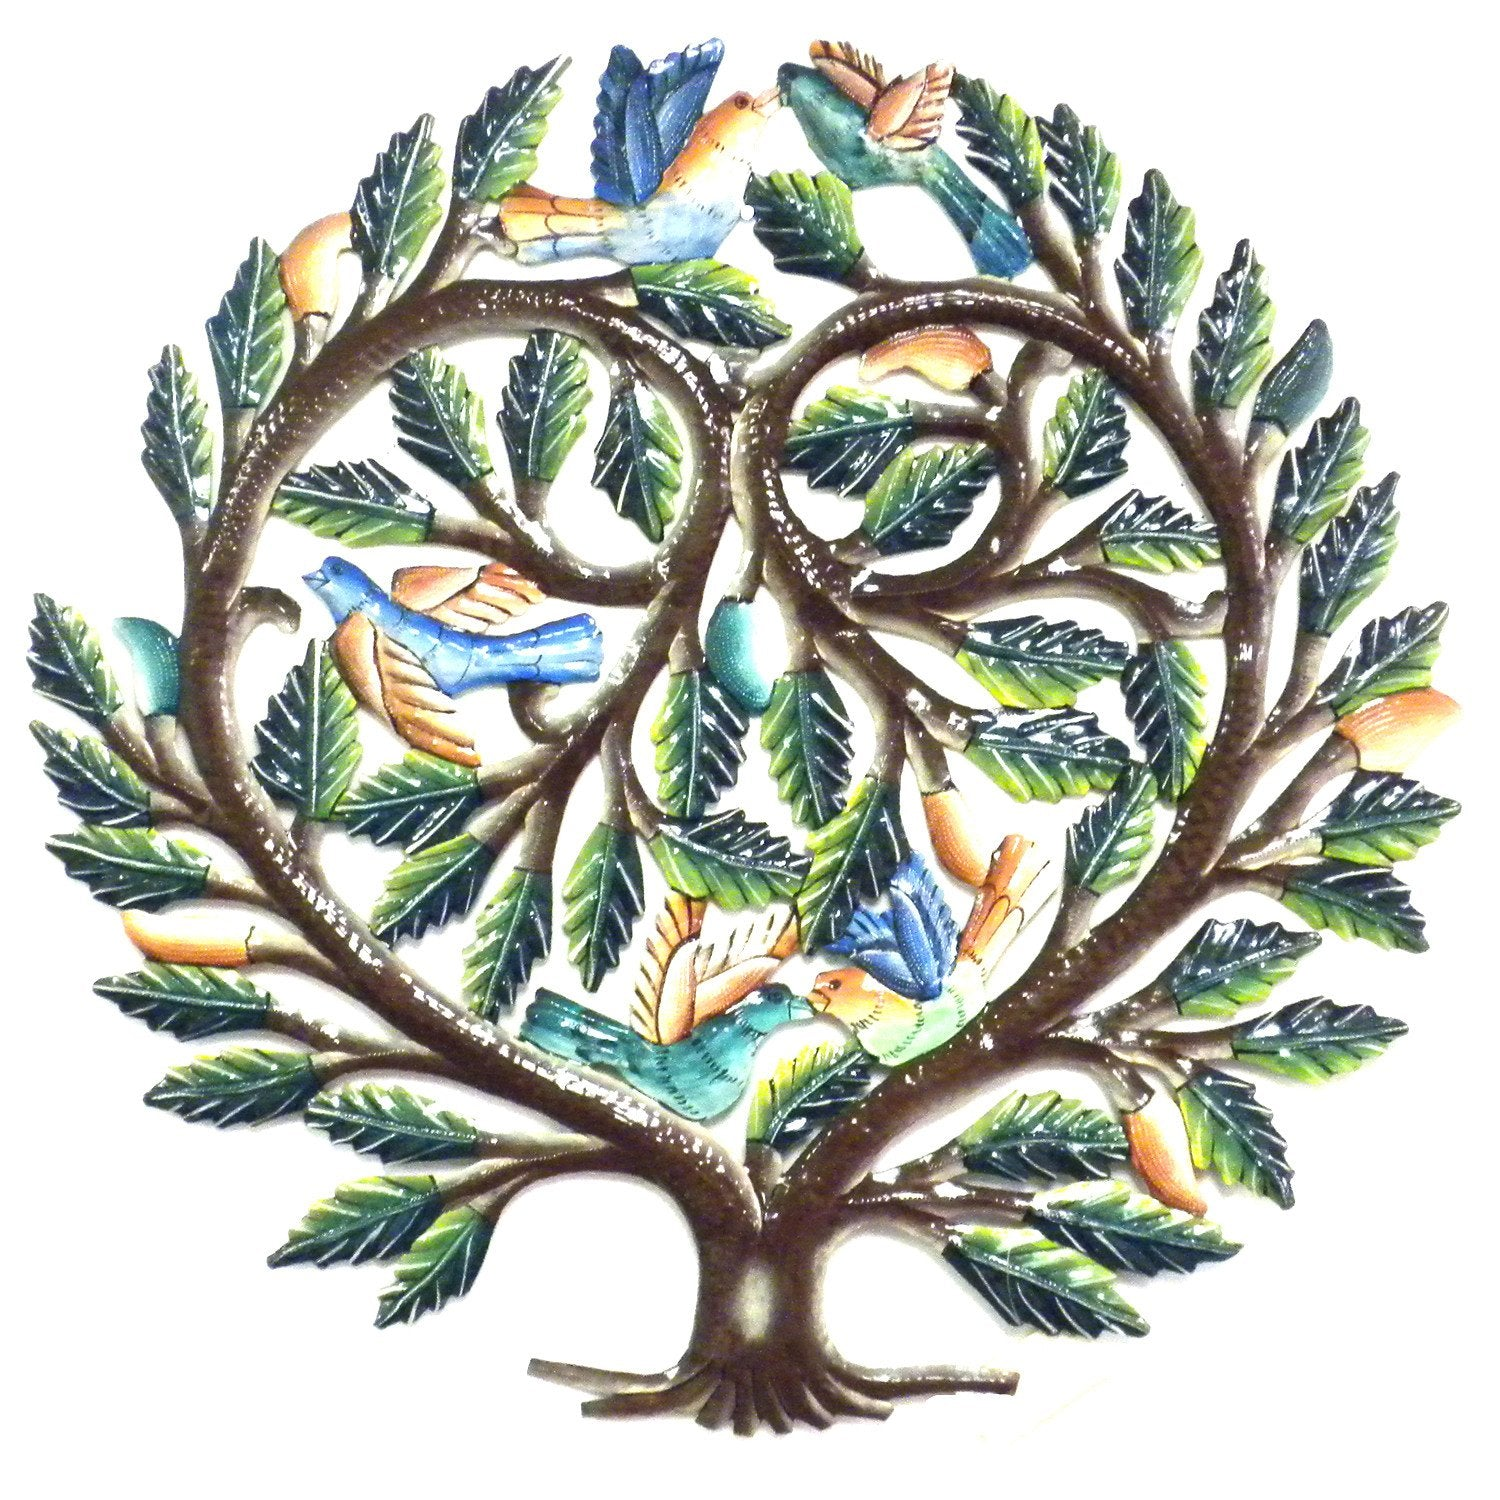 24 inch Painted Tree of Life Heart - Croix des Bouquets (Fair Trade)